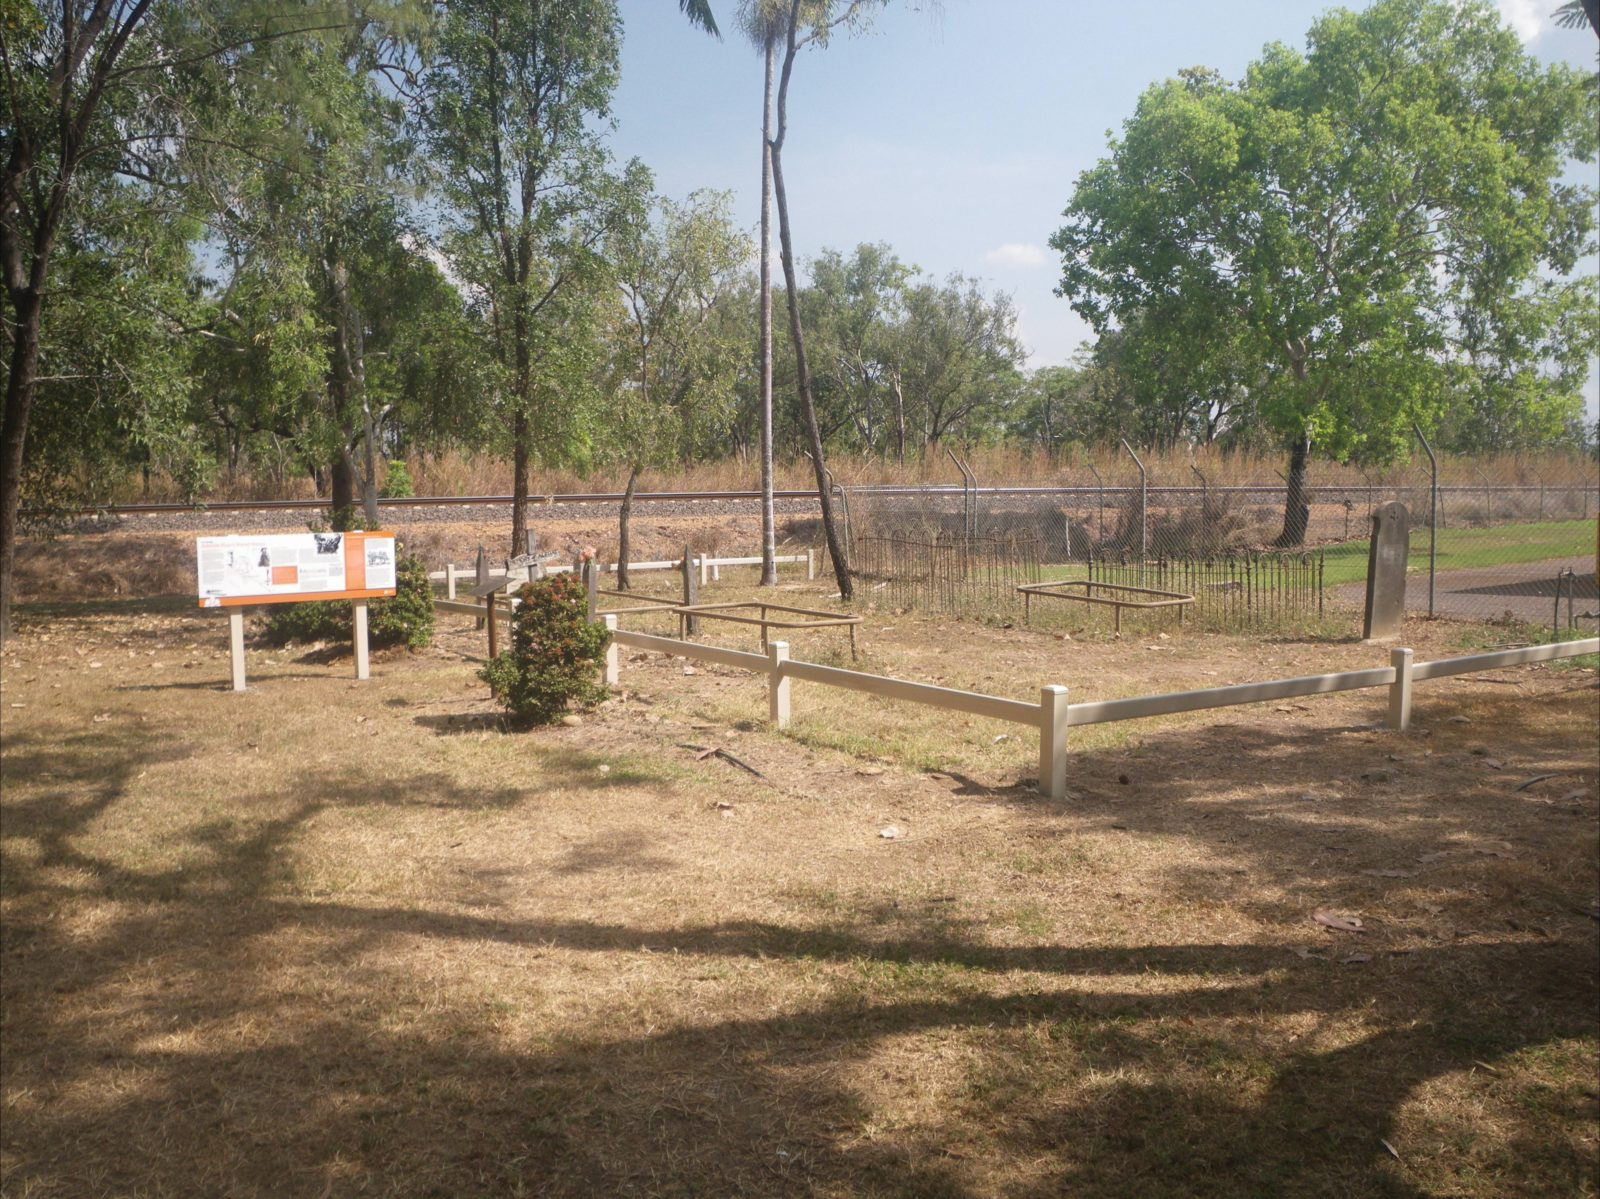 Photograph of the small cemetery with interpretive signage at Adelaide River.